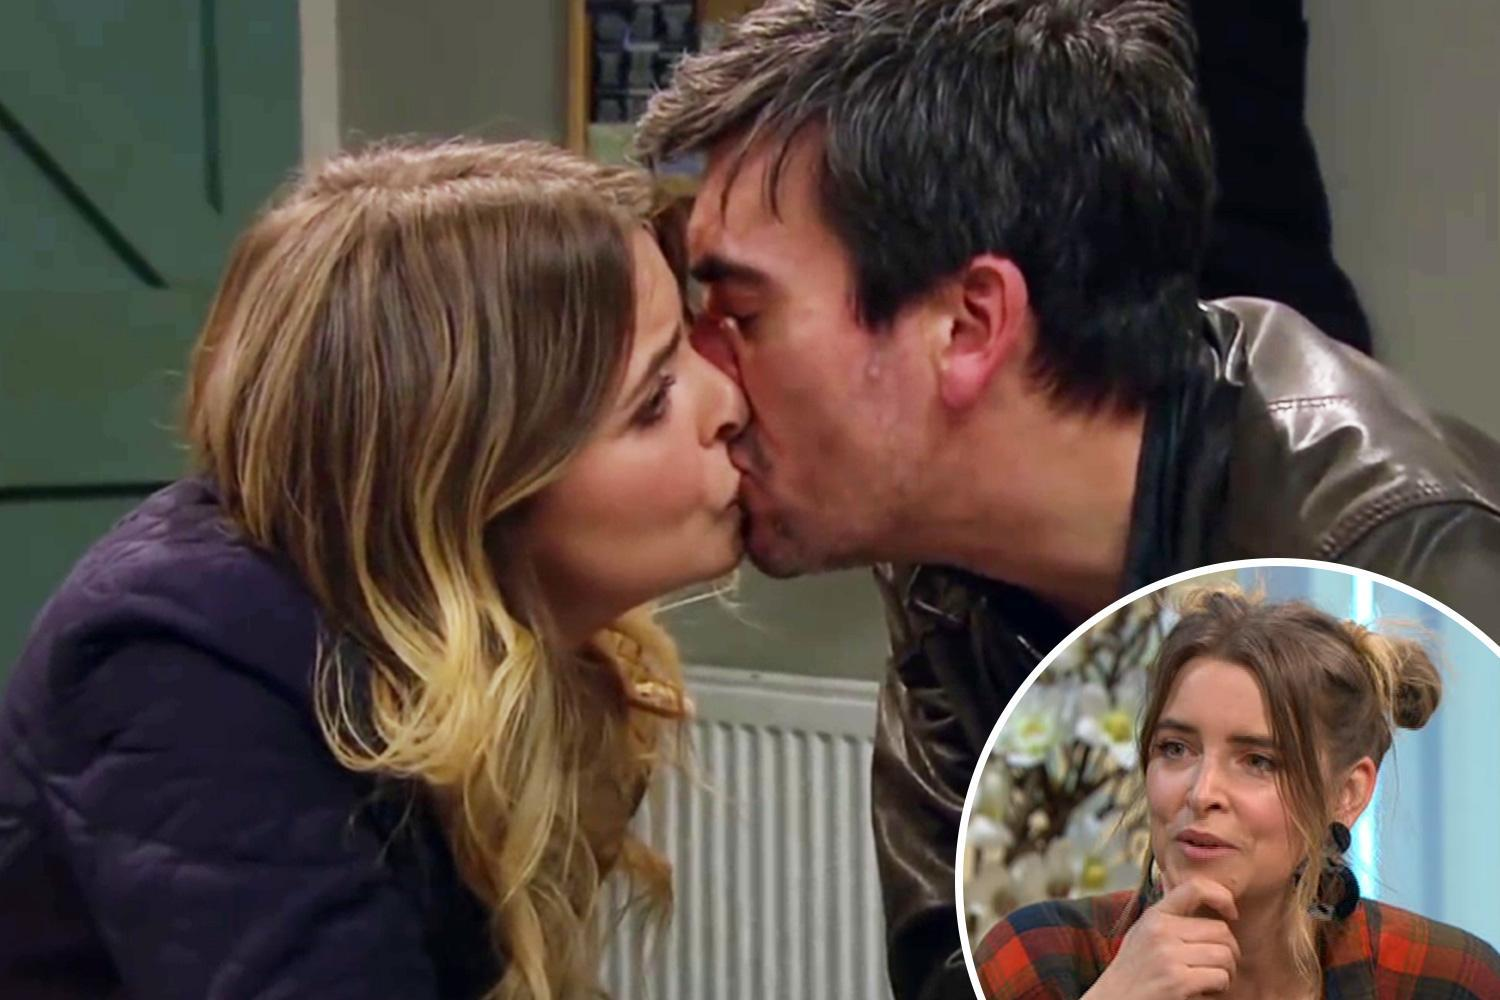 Emmerdale's Charity Dingle could betray fiancee Vanessa for steamy affair with COUSIN Cain says actress Emma Atkins